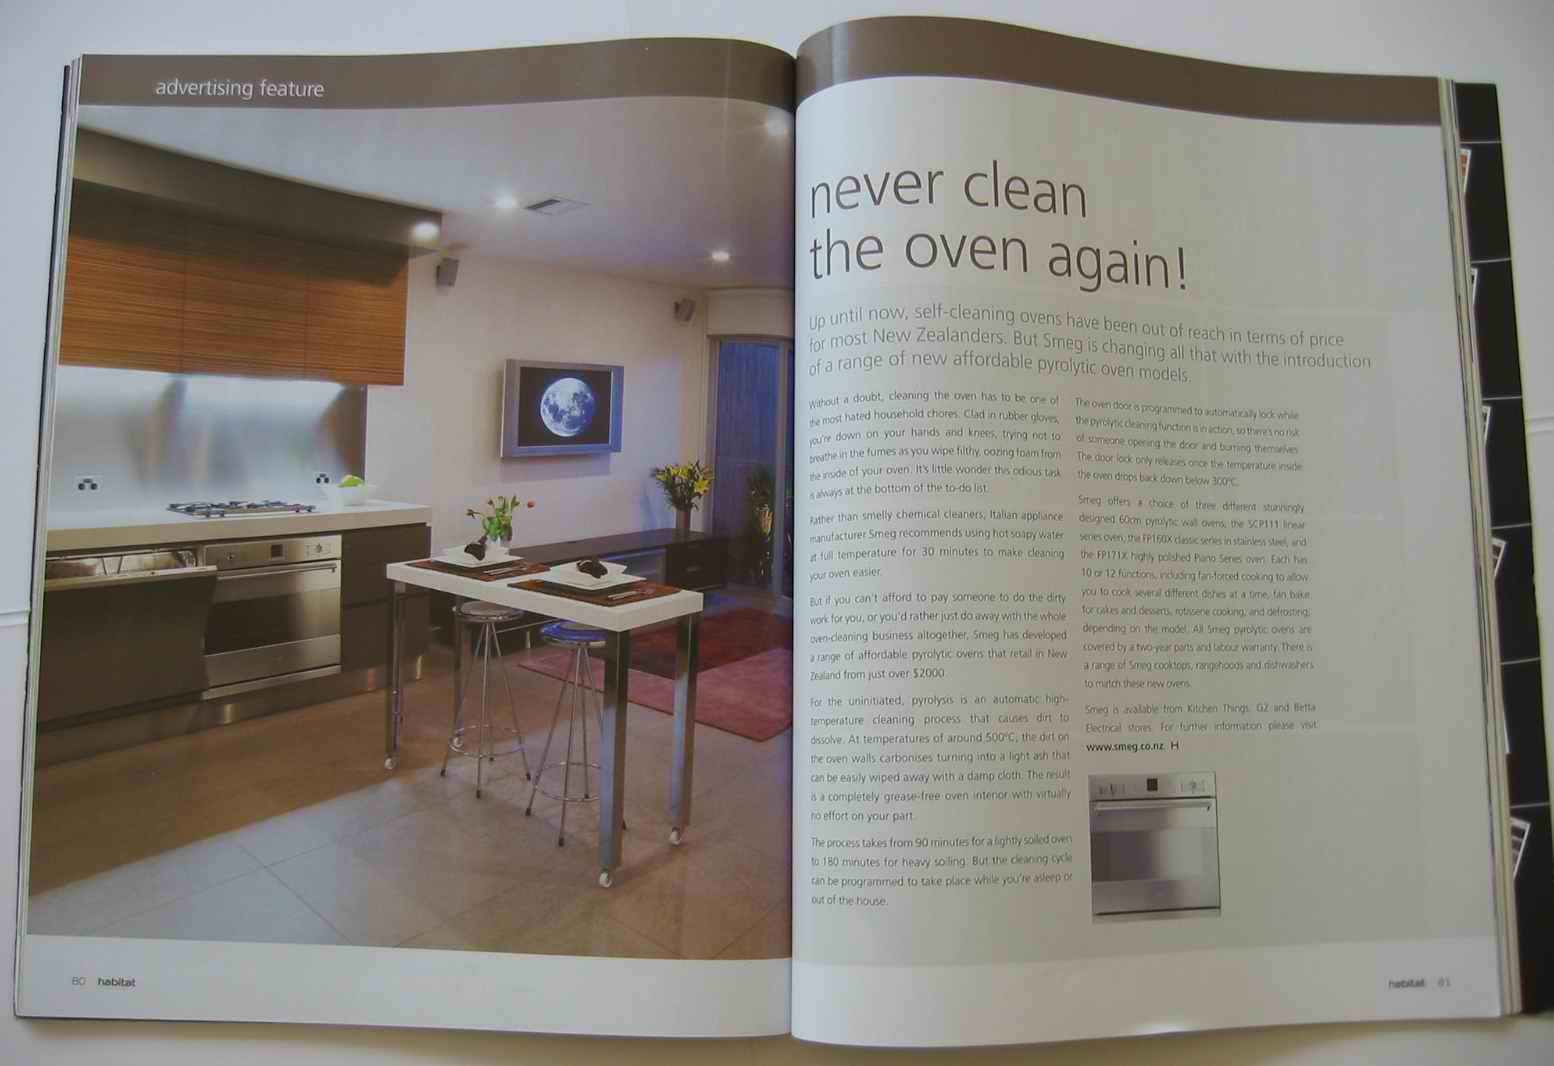 Pyrolitic oven advertorial